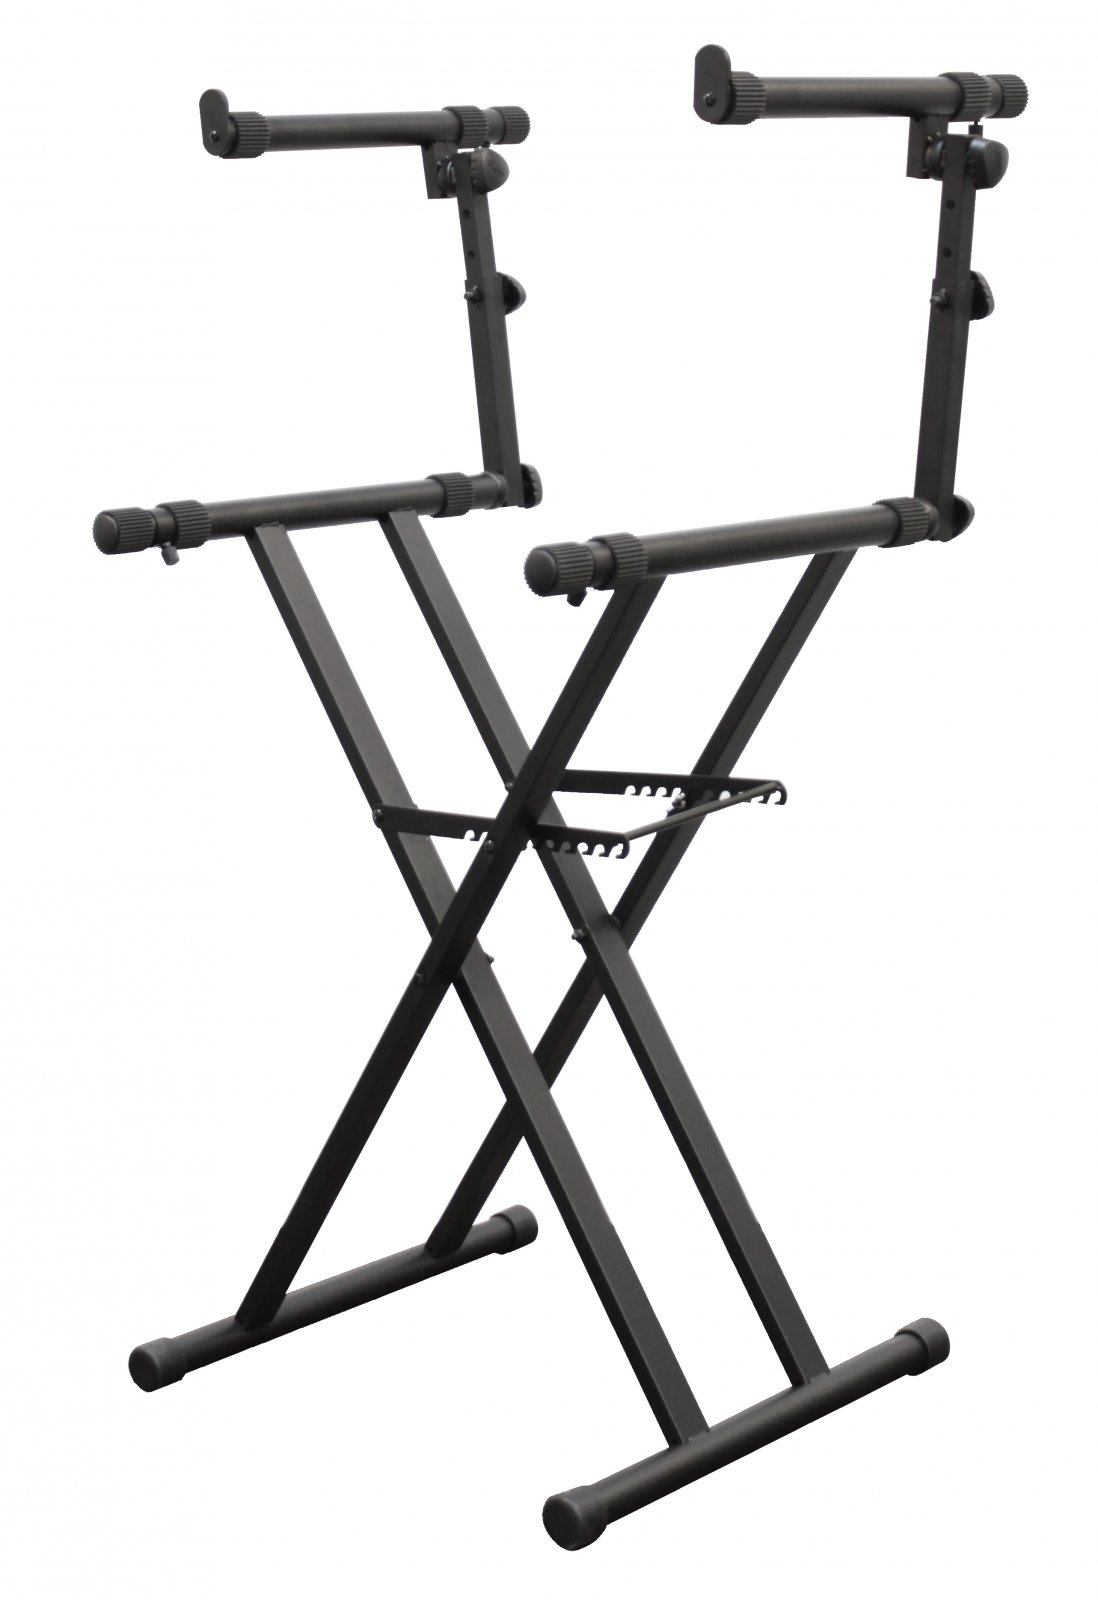 Odyssey Case LTBXS2 - X Stand, Double Tier - Black